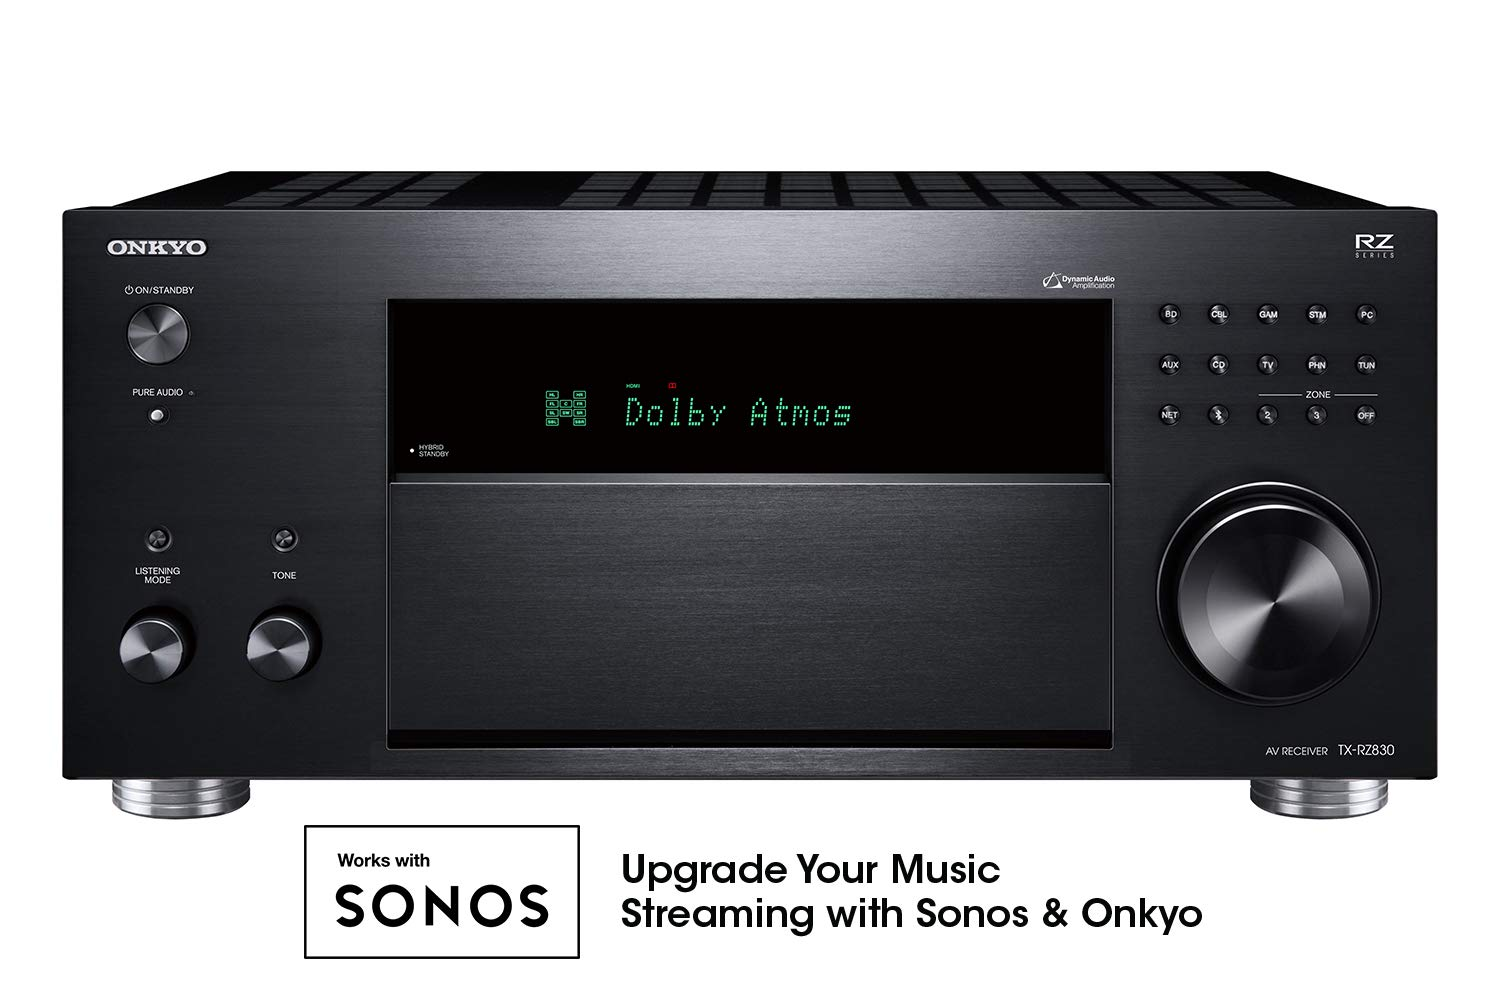 Onkyo TX-RZ830 9.2 Channel 4K Network A/V Receiver Black by Onkyo (Image #1)